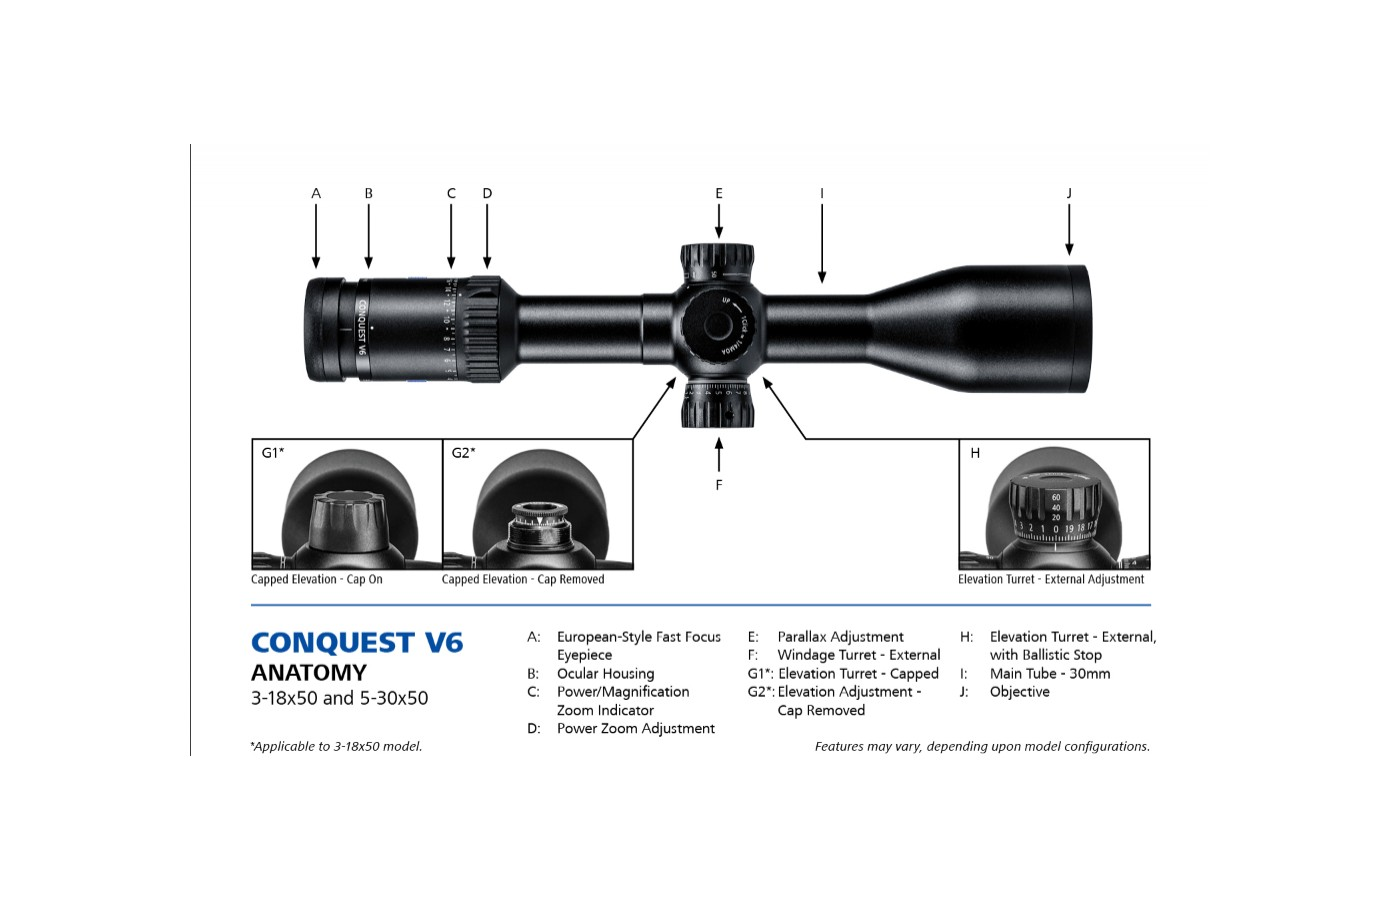 The body of the Zeiss Conquest V6 is made up of 11 individual sections.